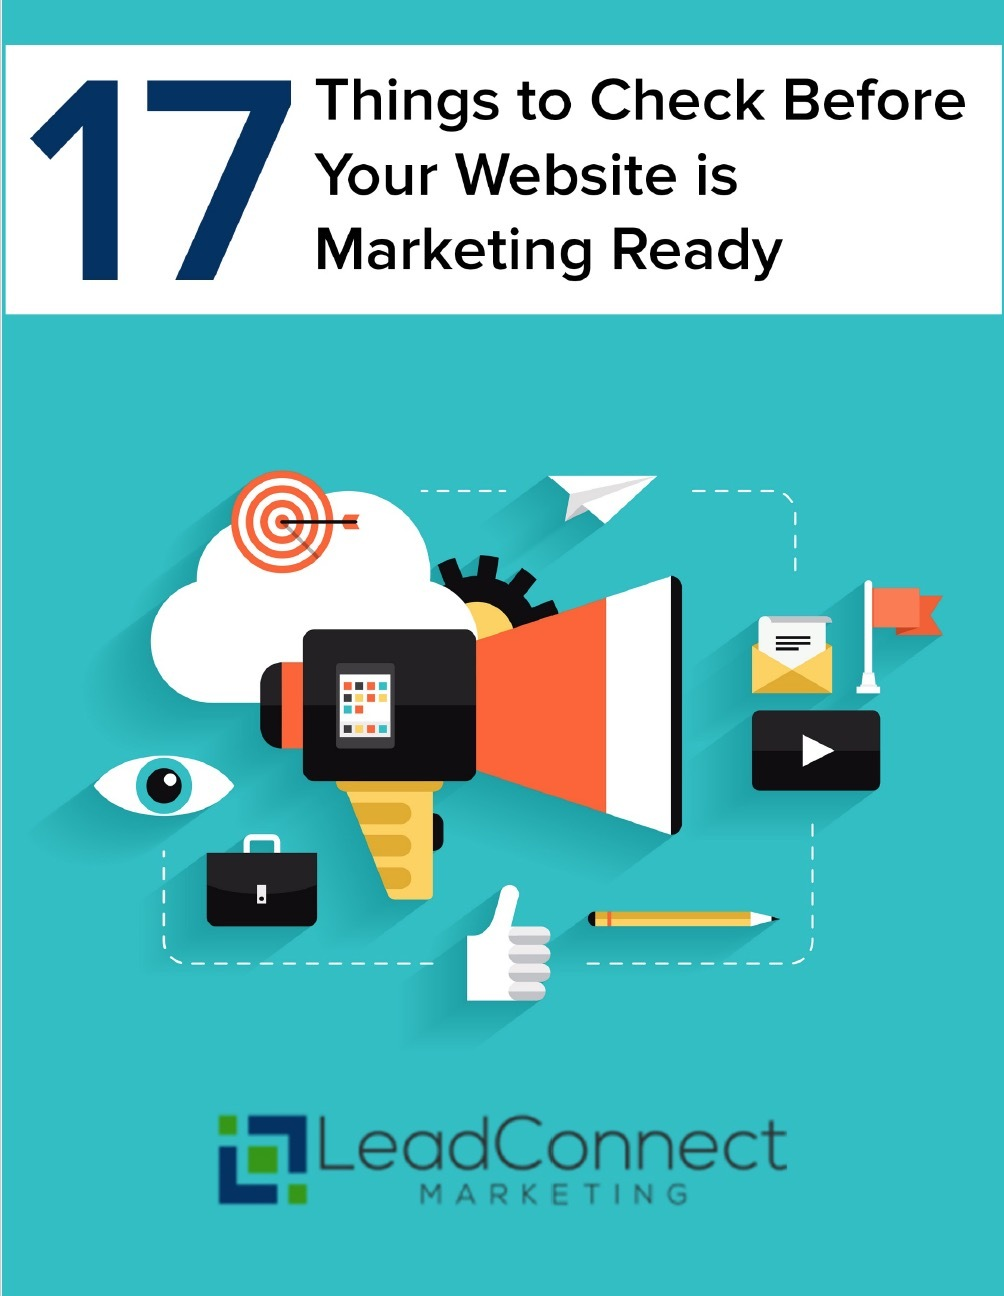 17_Things_to_CHeck_Before_Your_Website_is_Marketing_Ready.jpg